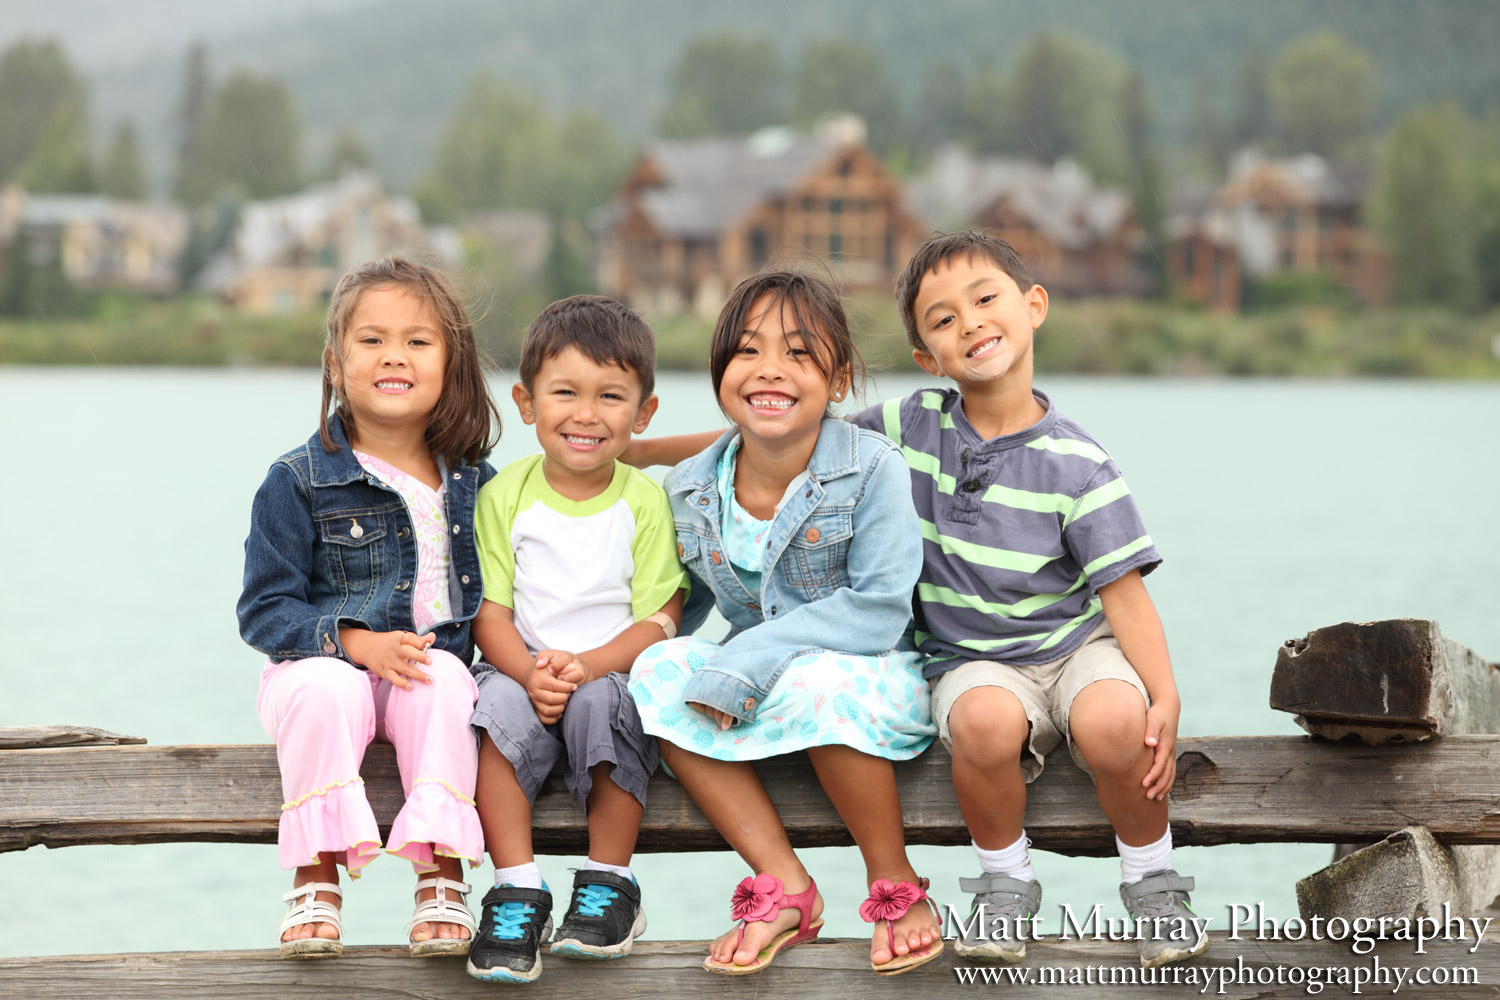 Family Portrait Photography Service Whistler BC Canada